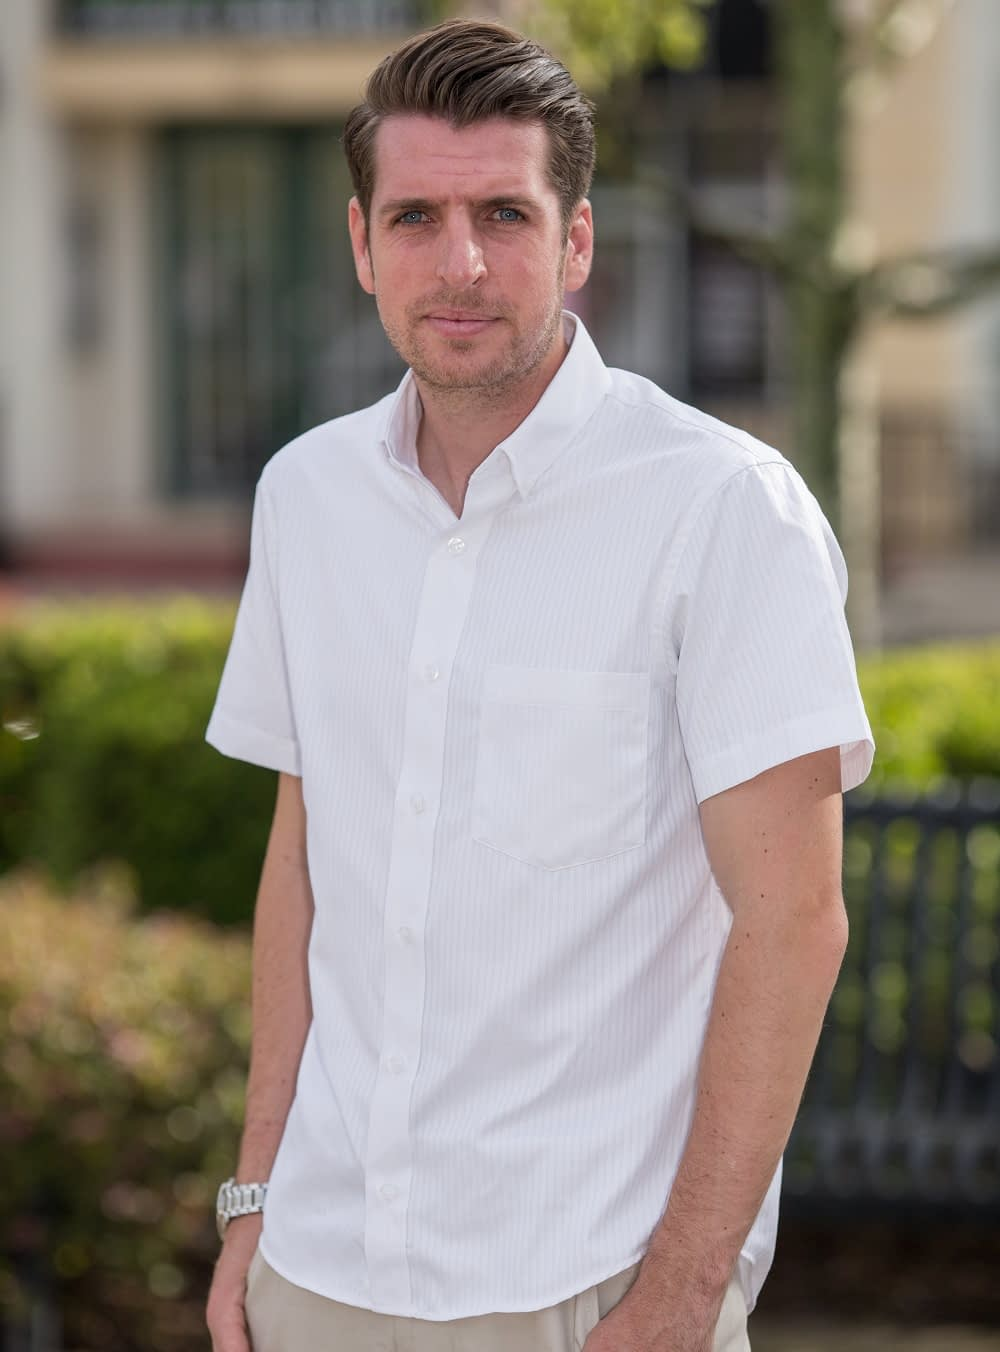 Tall Men's 'Classic White' Casual Short Sleeve Shirt